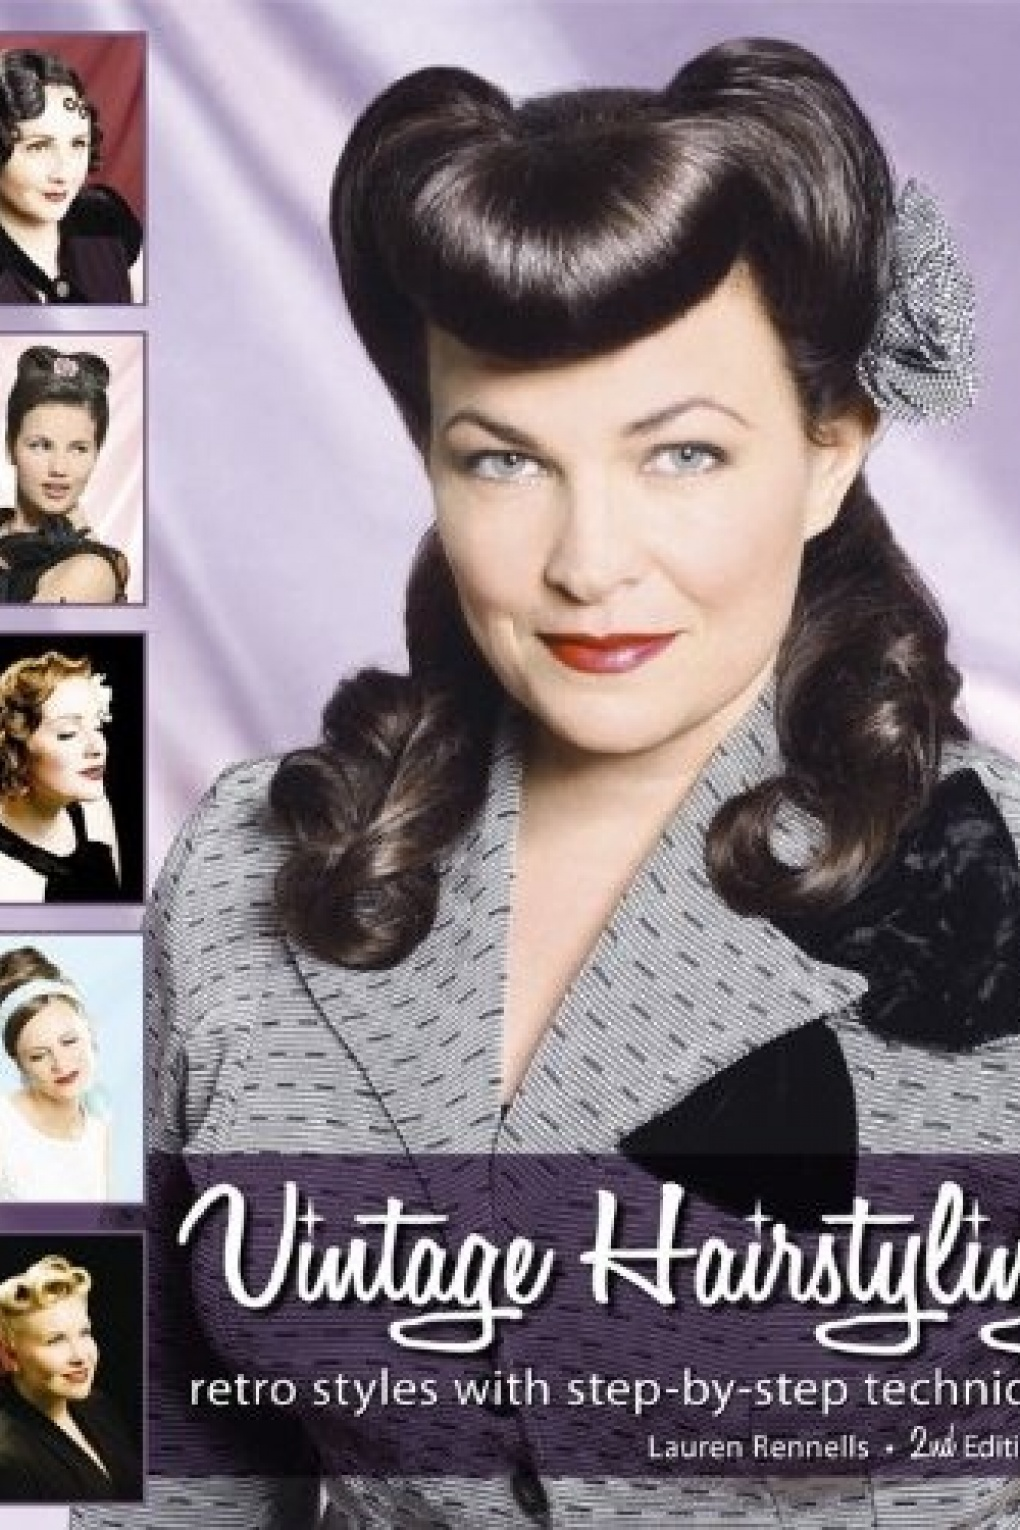 1940s Vintage Hair Accessories – 4 Authentic Styles Vintage Hairstyling Retro Styles With Step by Step Techniques 2nd edition £29.68 AT vintagedancer.com